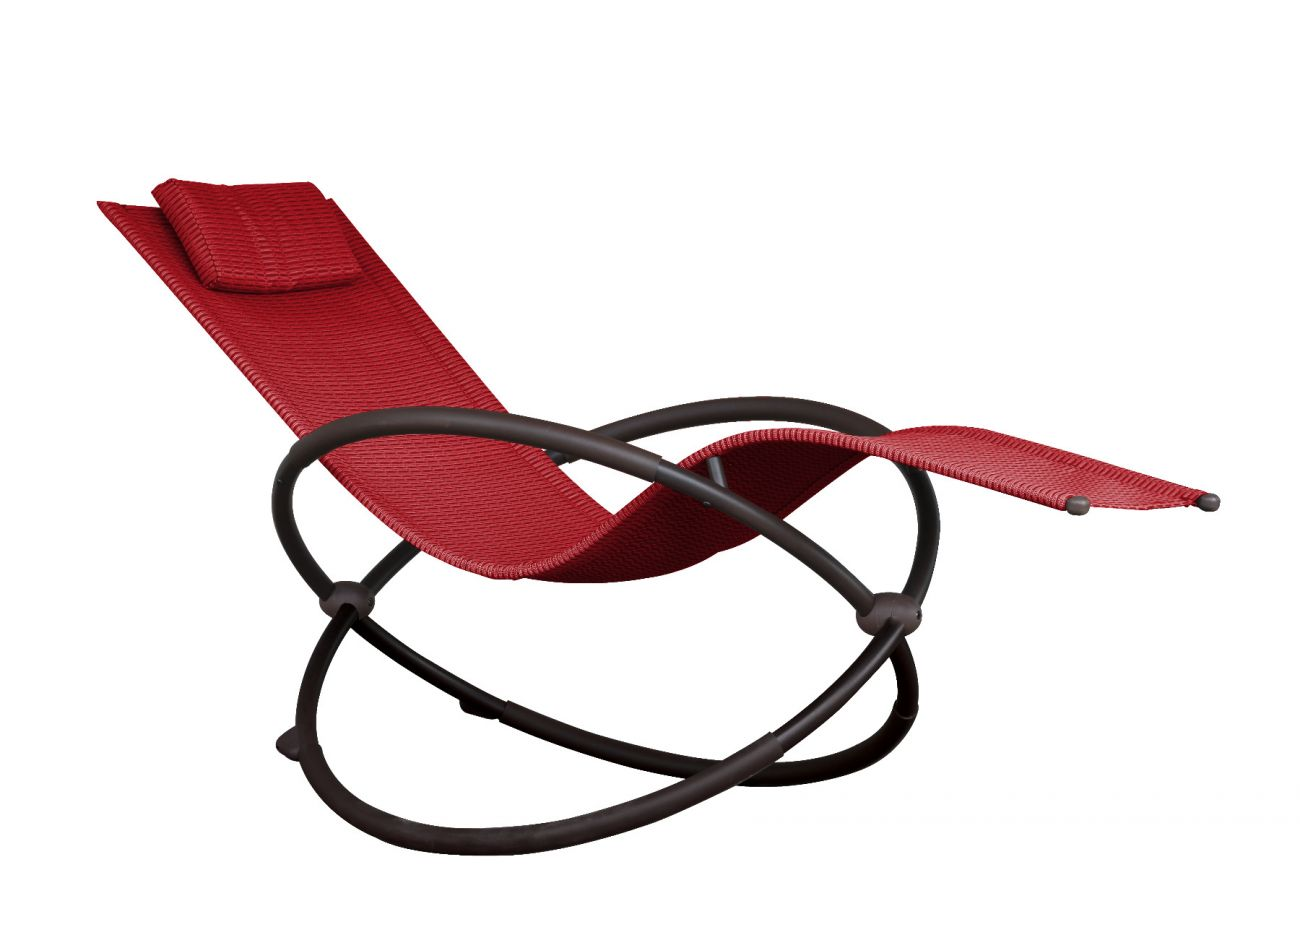 Schaukelstuhl 1 Person Orbital Lounger Red